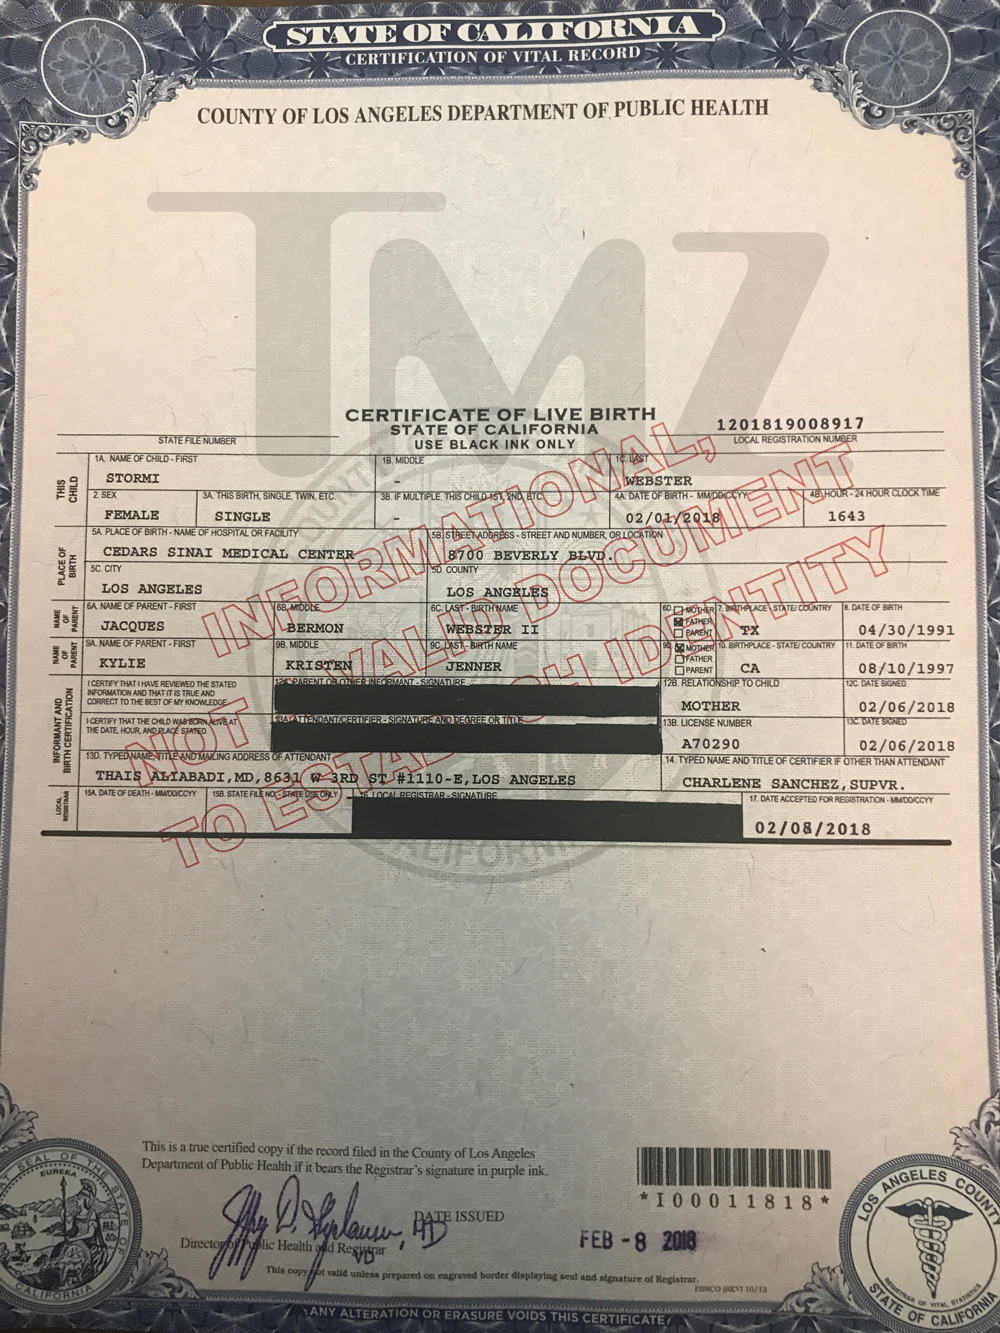 Stormi Websters Official Name On Birth Certificate Kylie Jenner